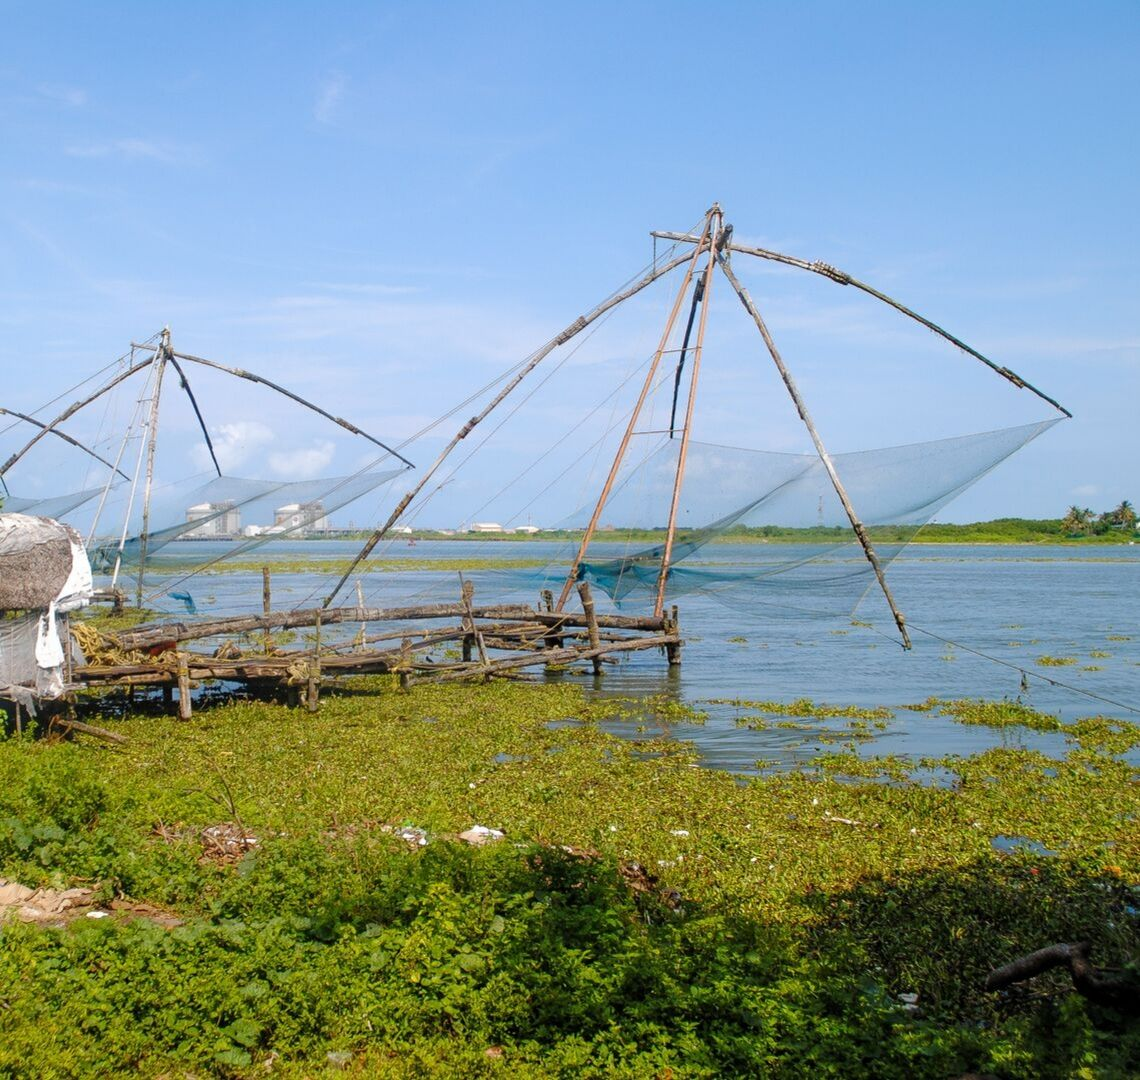 10 Day Kerala Itinerary - Chinese fishing nets (same photo as header)